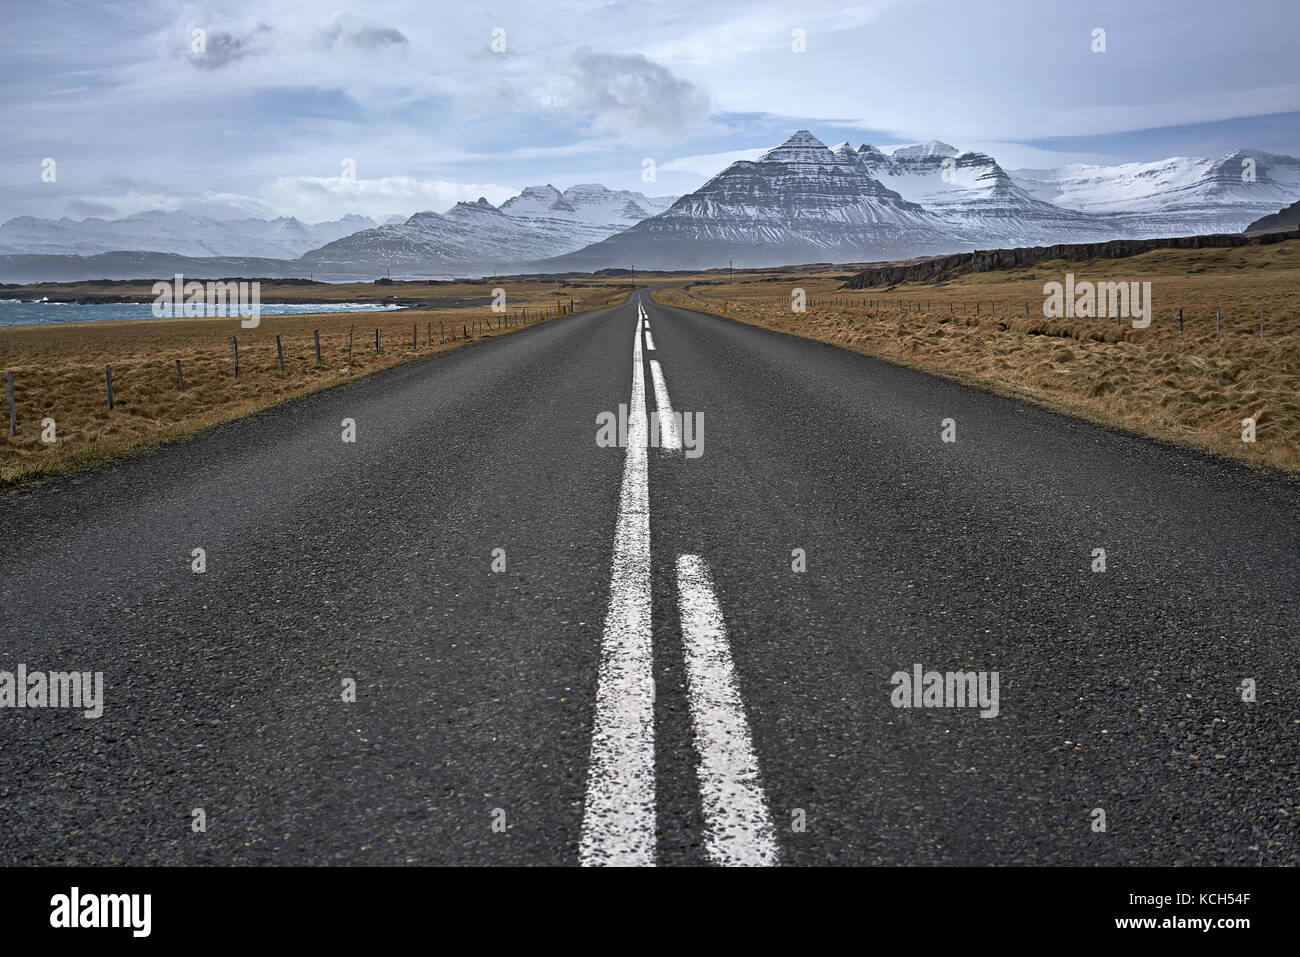 Suburban roadway in Iceland - Stock Image